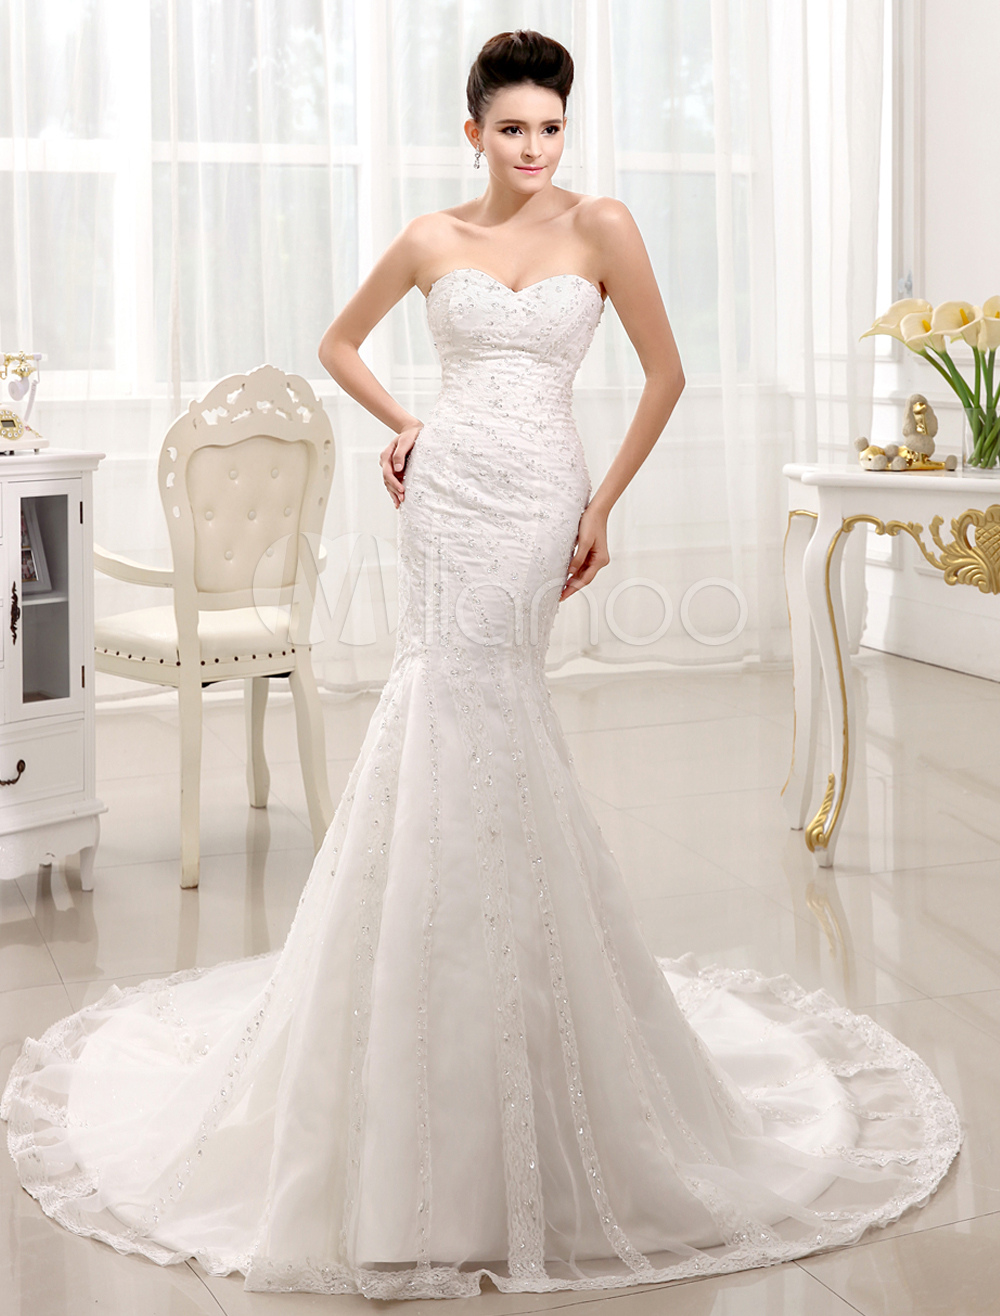 Beaded Wedding Dress For Bride with Sweetheart Neck Mermaid Strapless